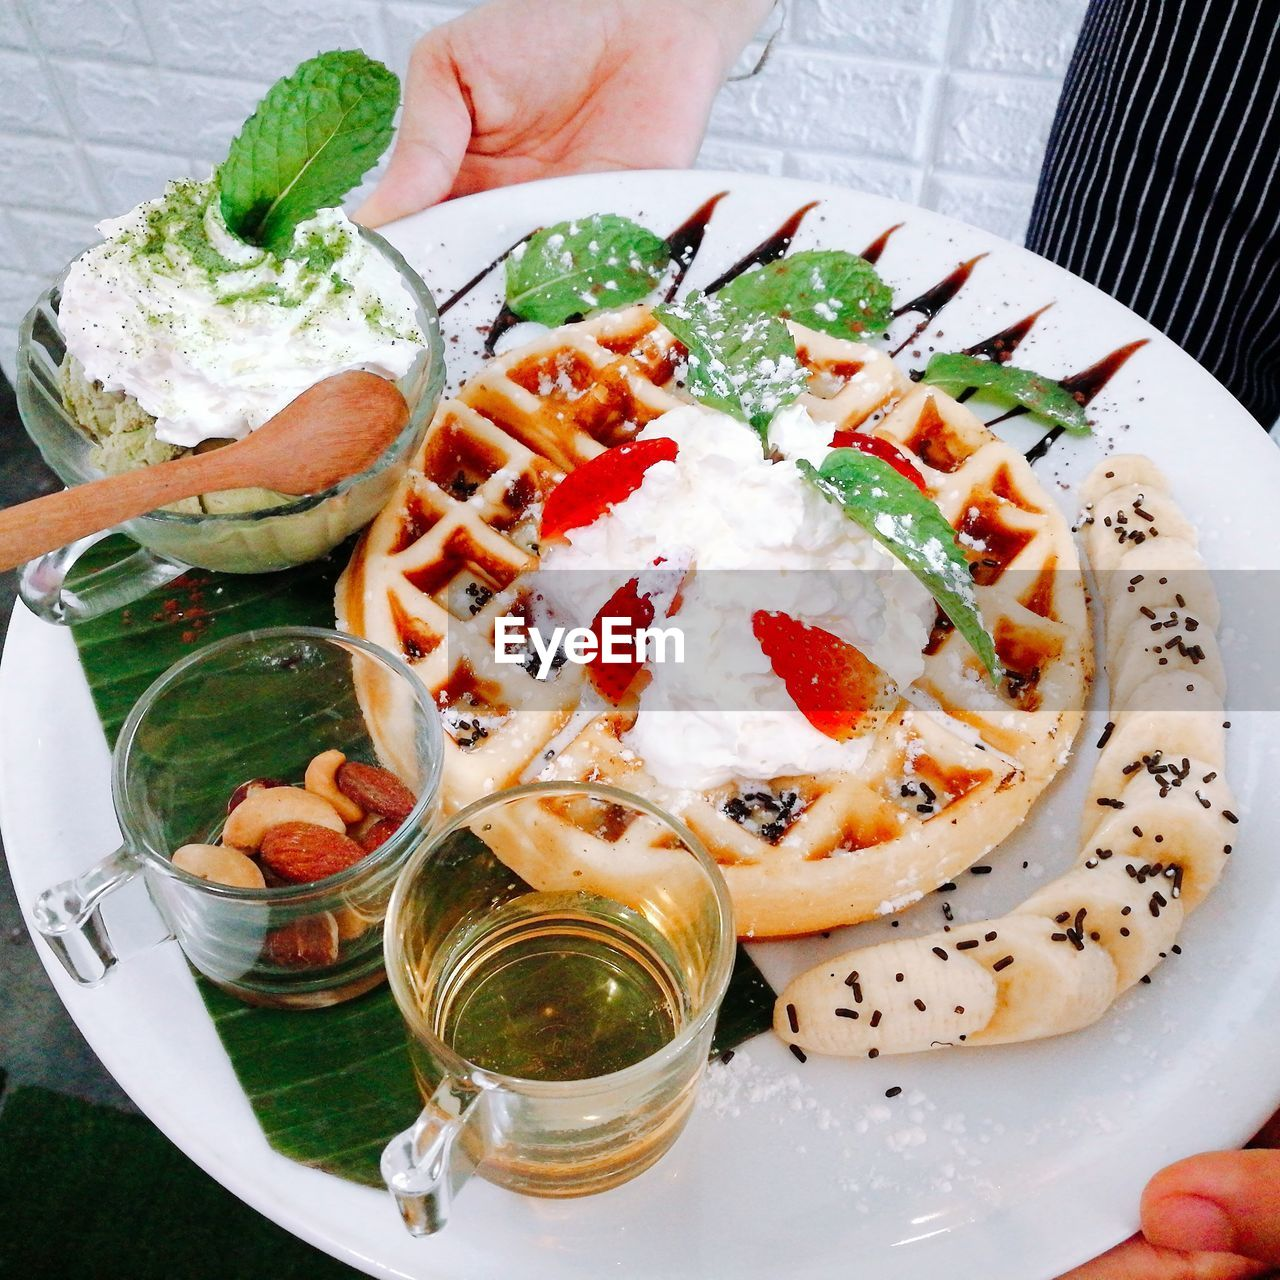 Cropped Hand Holding Food And Drink In Plate